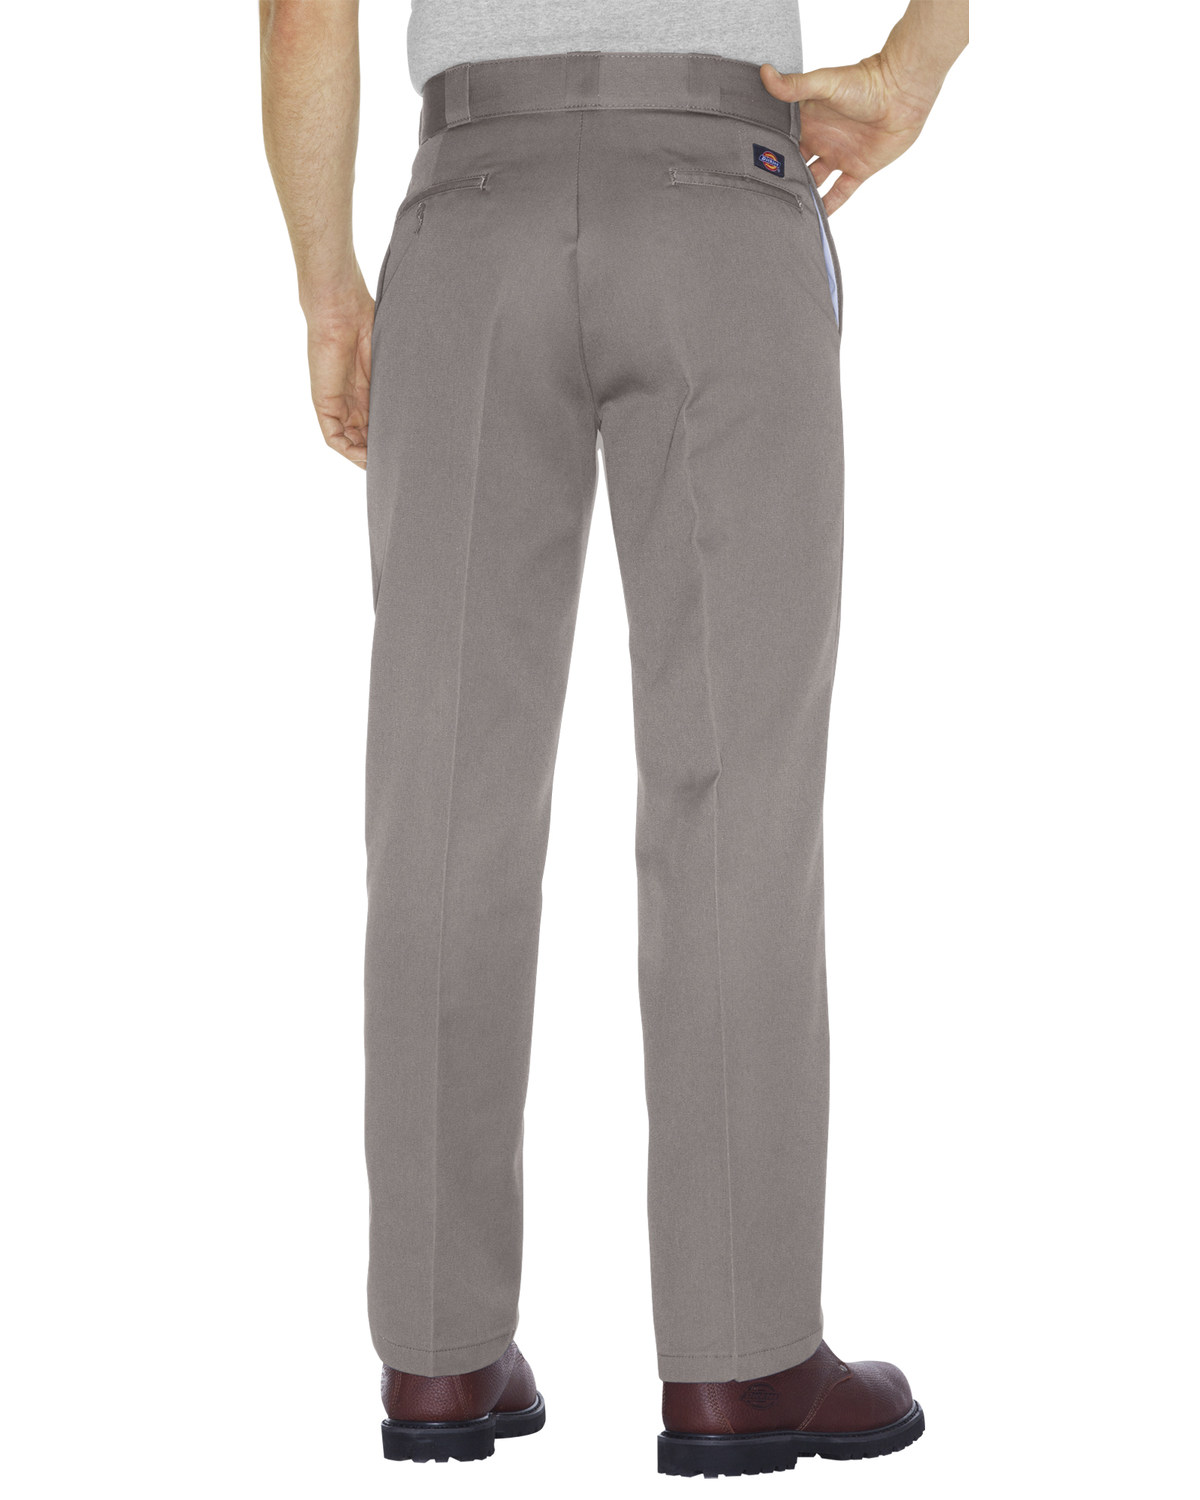 38660f039e00f2 Zoomed Image Dickies Men's Original 874® Silver Work Pants, Silver, ...